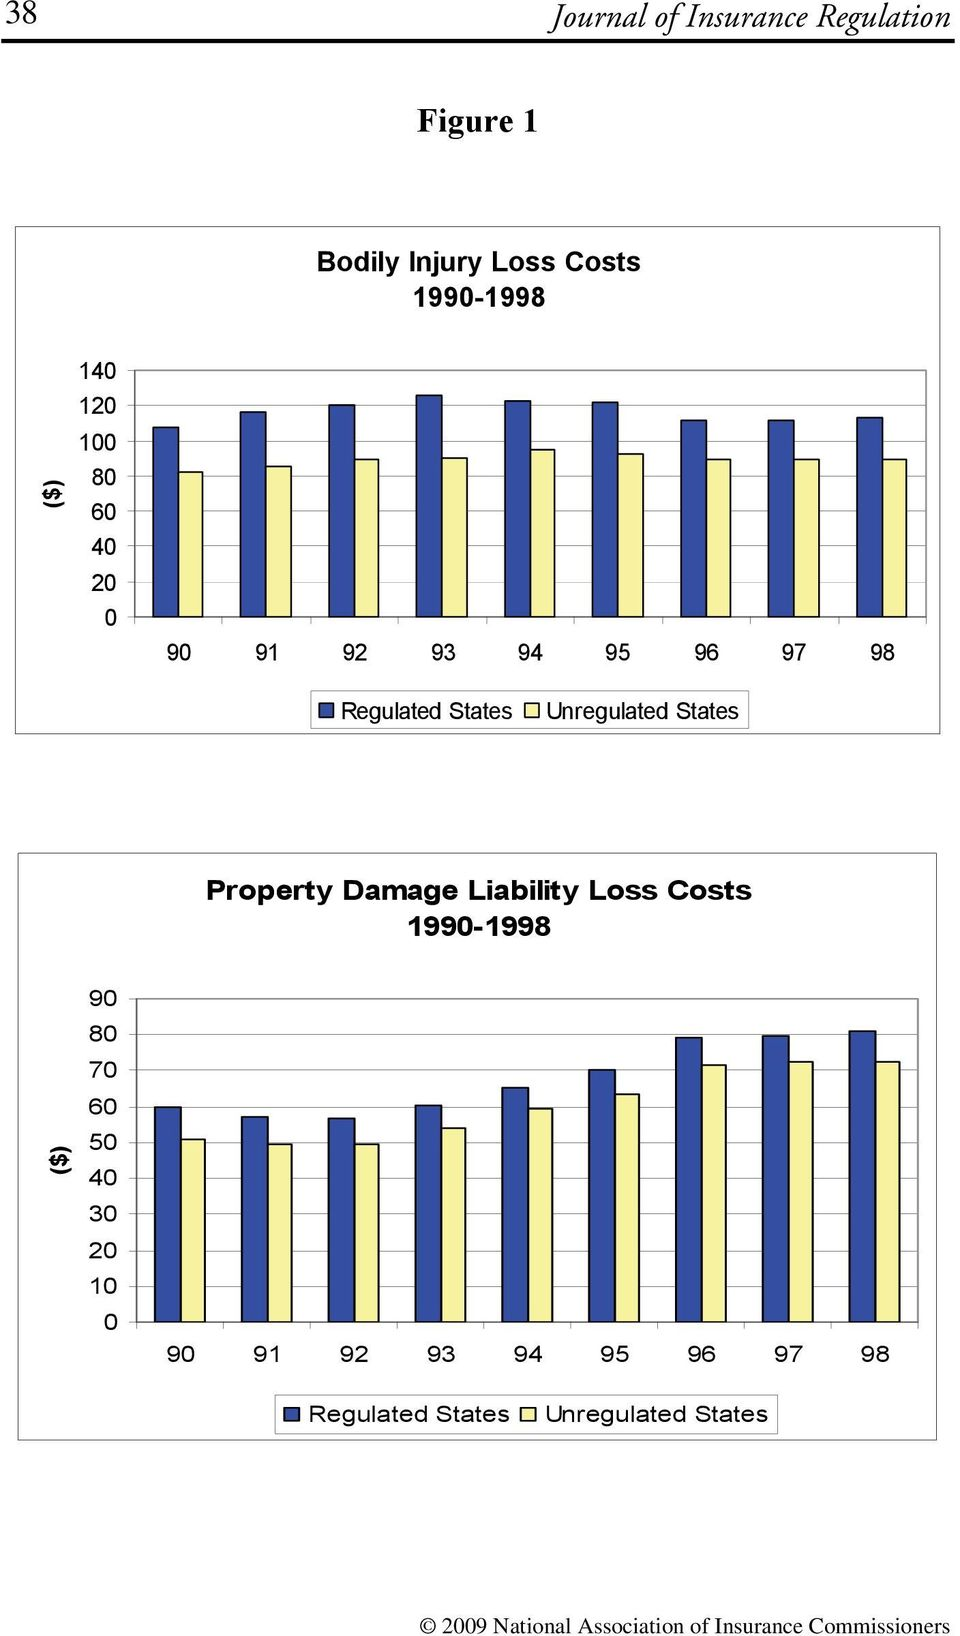 Unregulated States Property Damage Liability Loss Costs 1990-1998 ($) 90 80 70